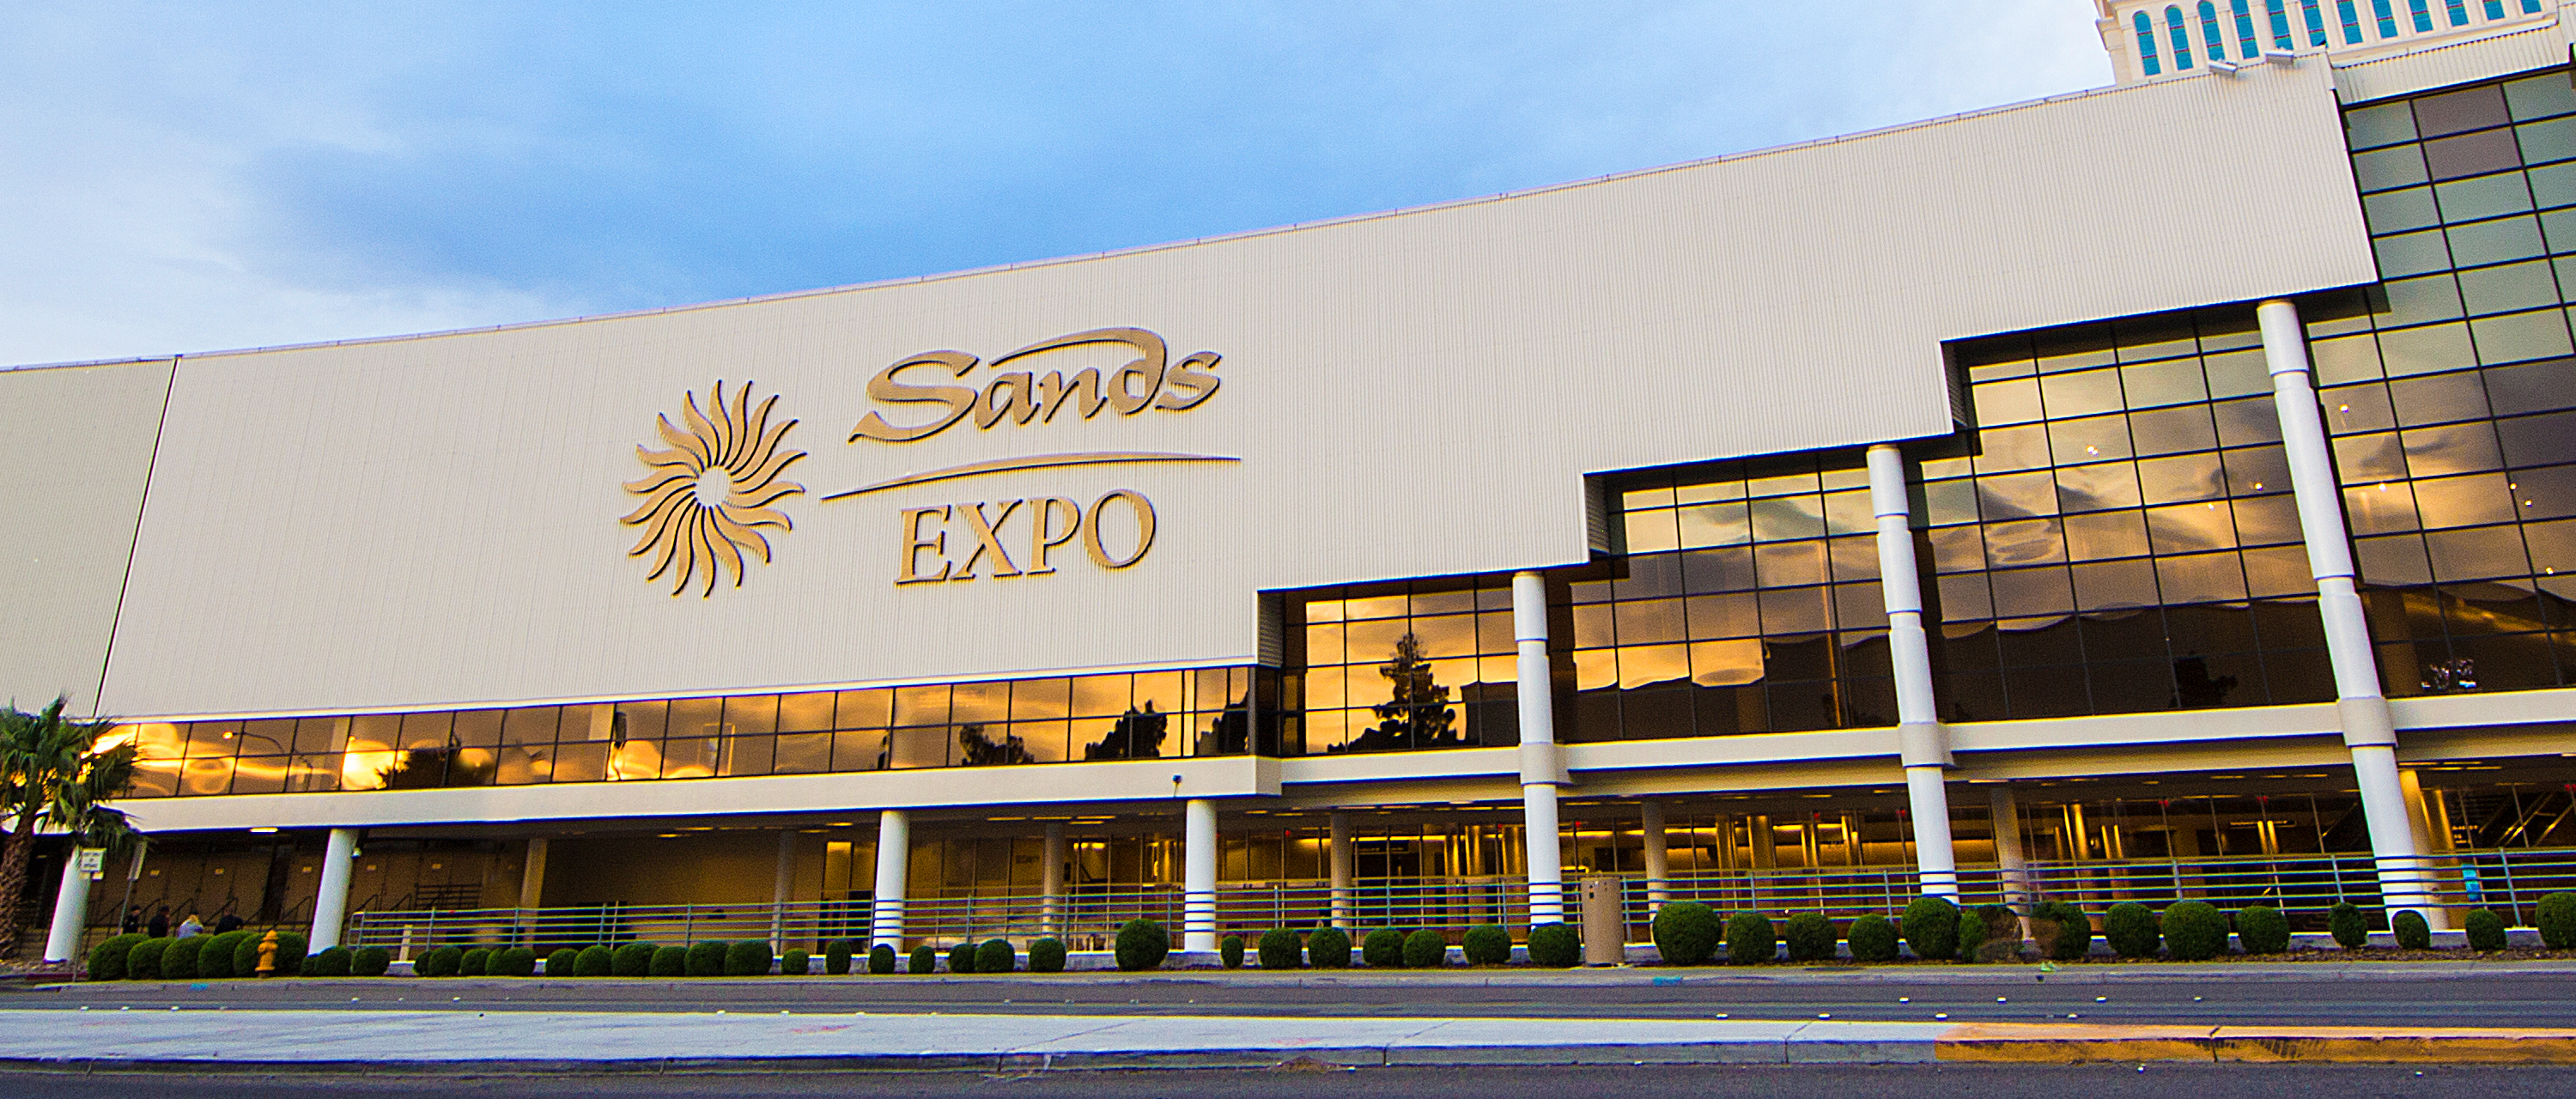 exhibition venue sands expo - schedule, address, location, space rental